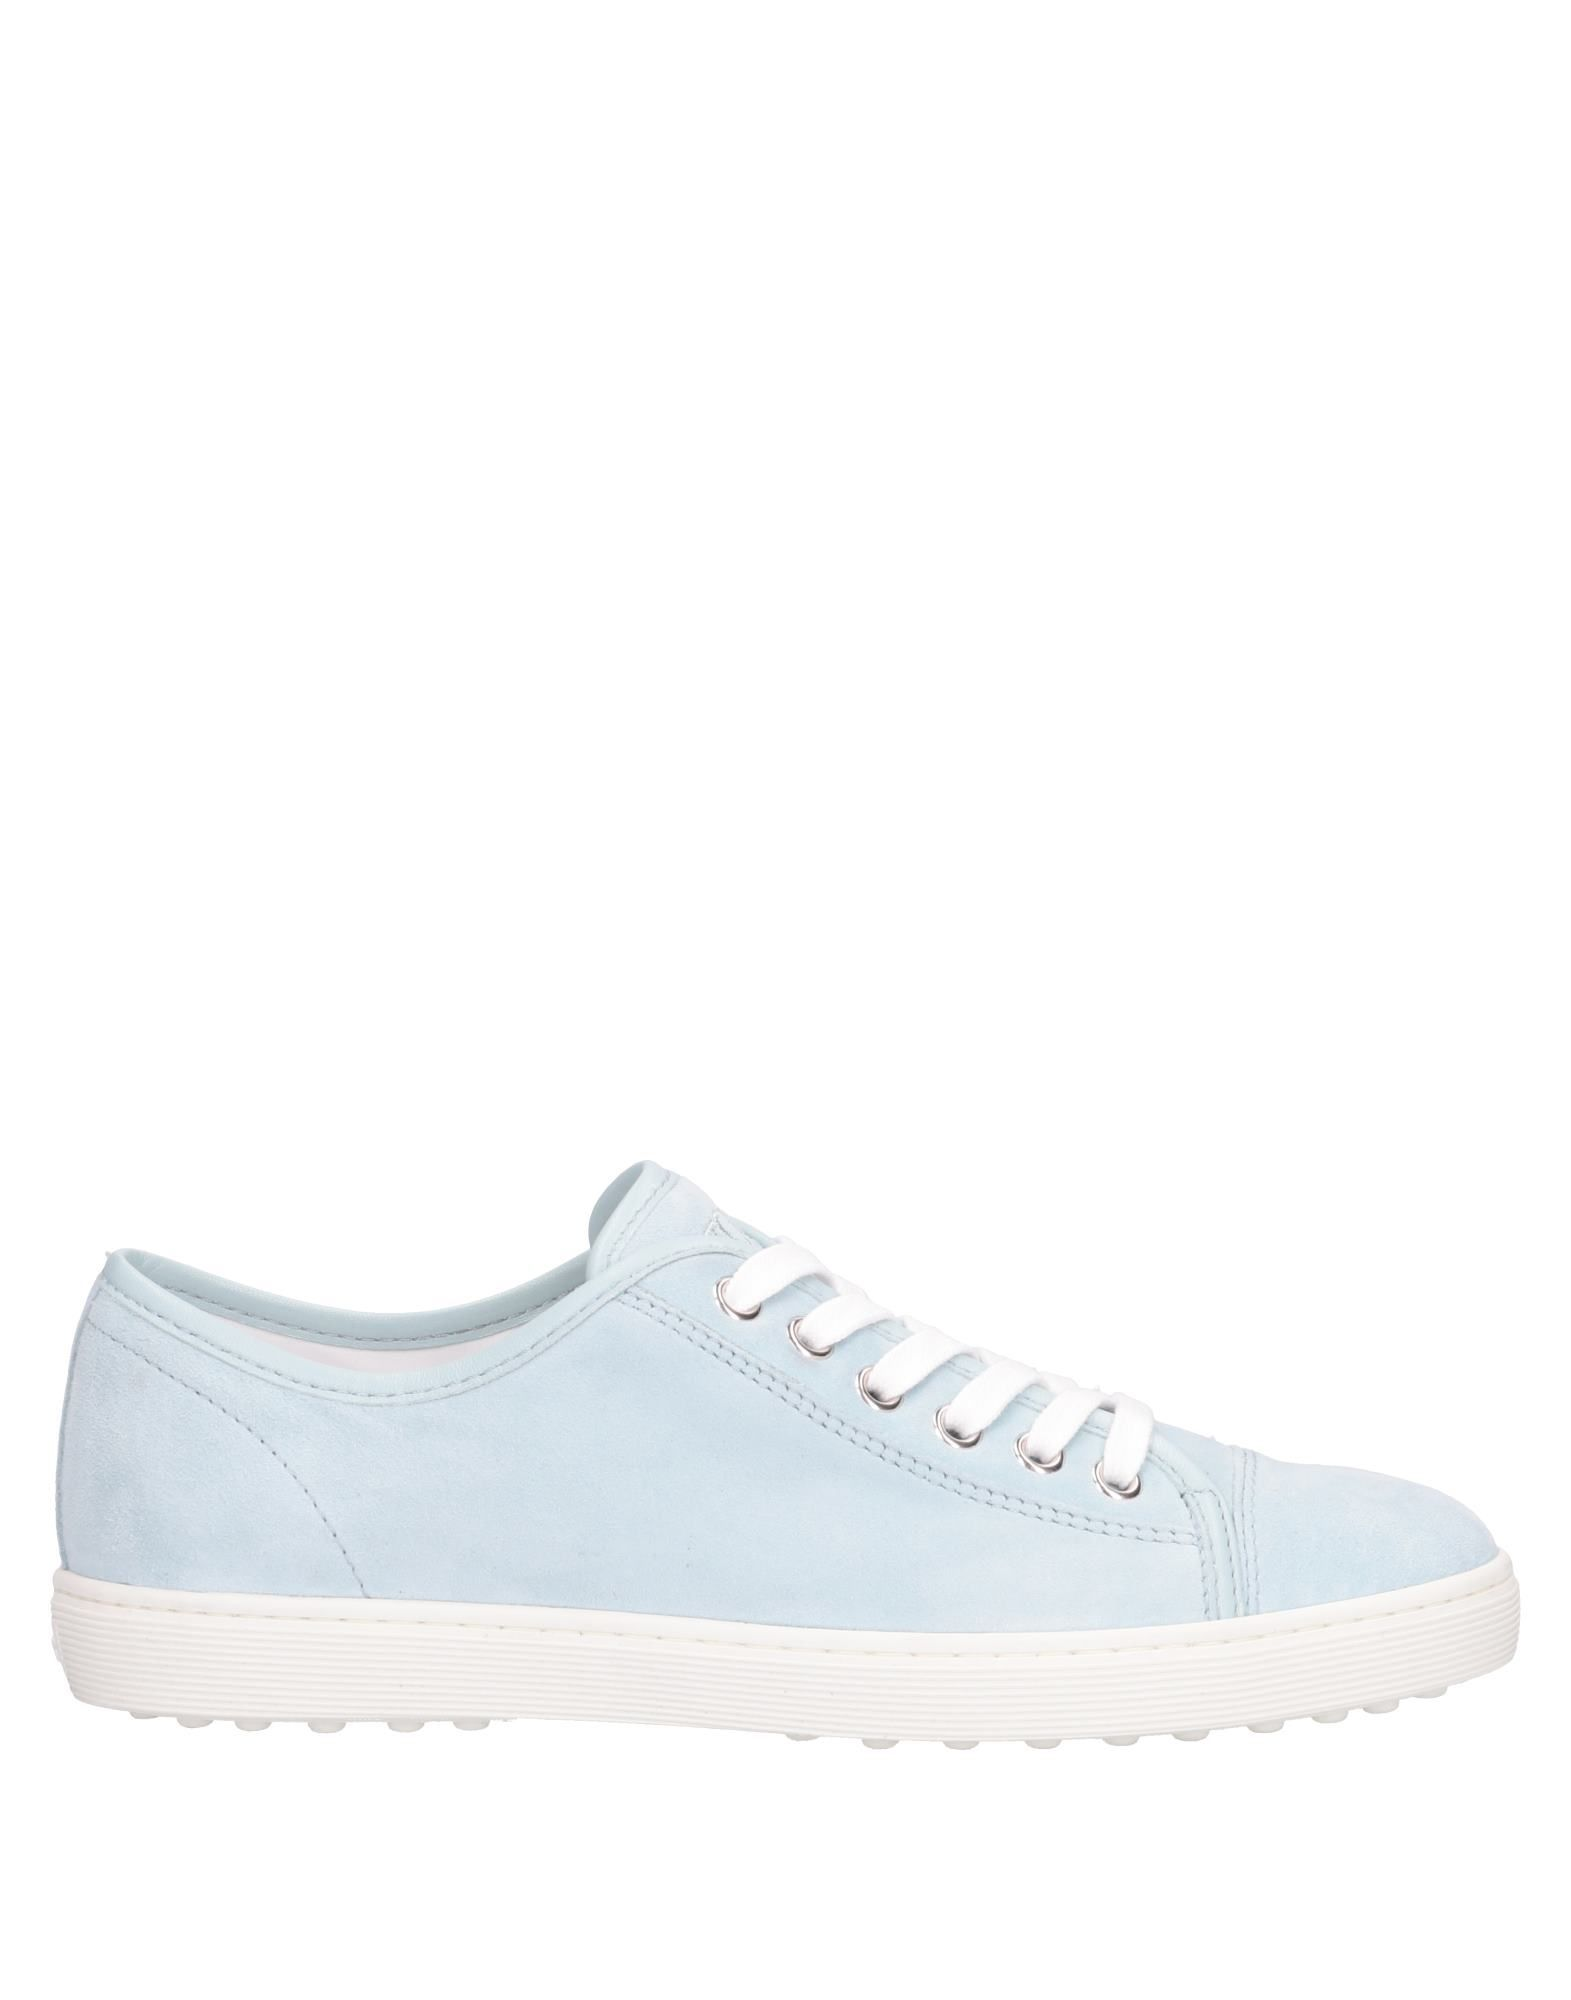 Tod's Sky Blue Leather Sneakers